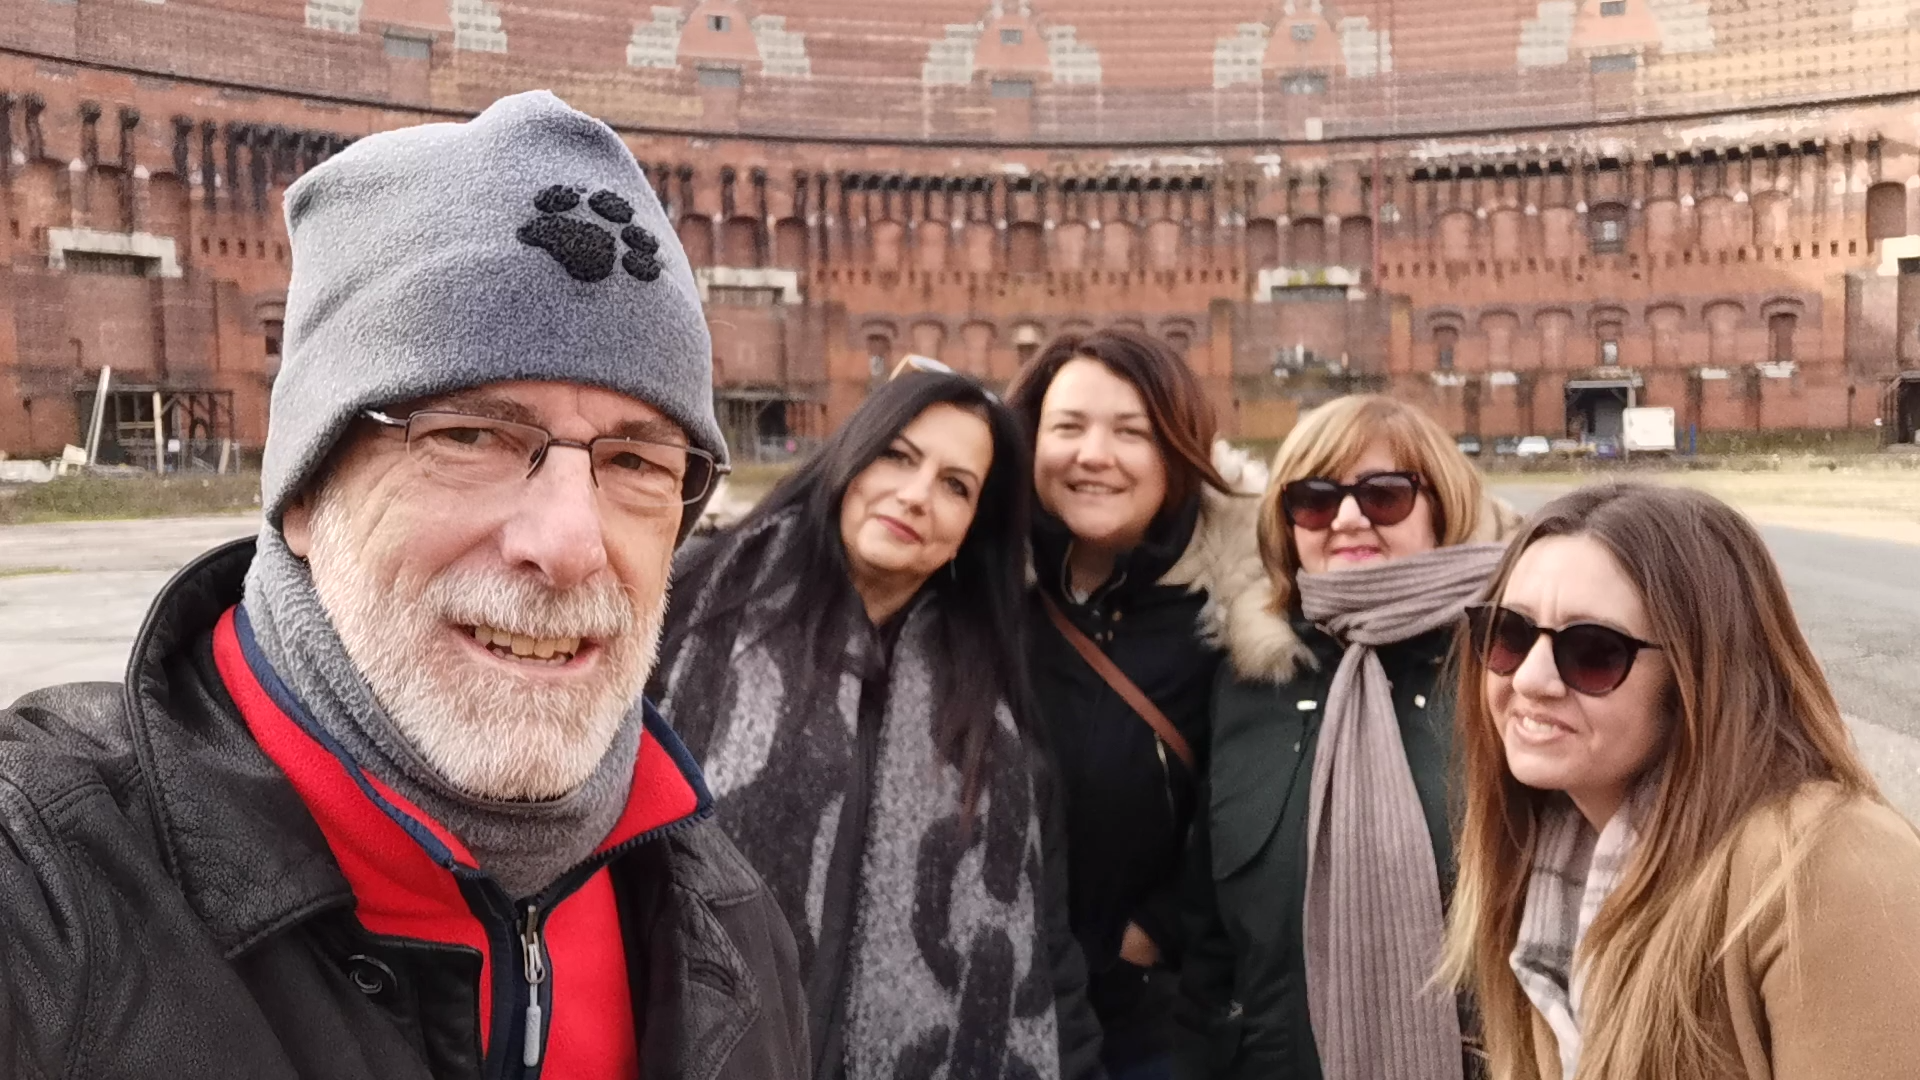 nuremberg.tours.in.english #Nuremberg Tours in English with #HappyTourCustomers in the Congress Hall for my first tour of 2020